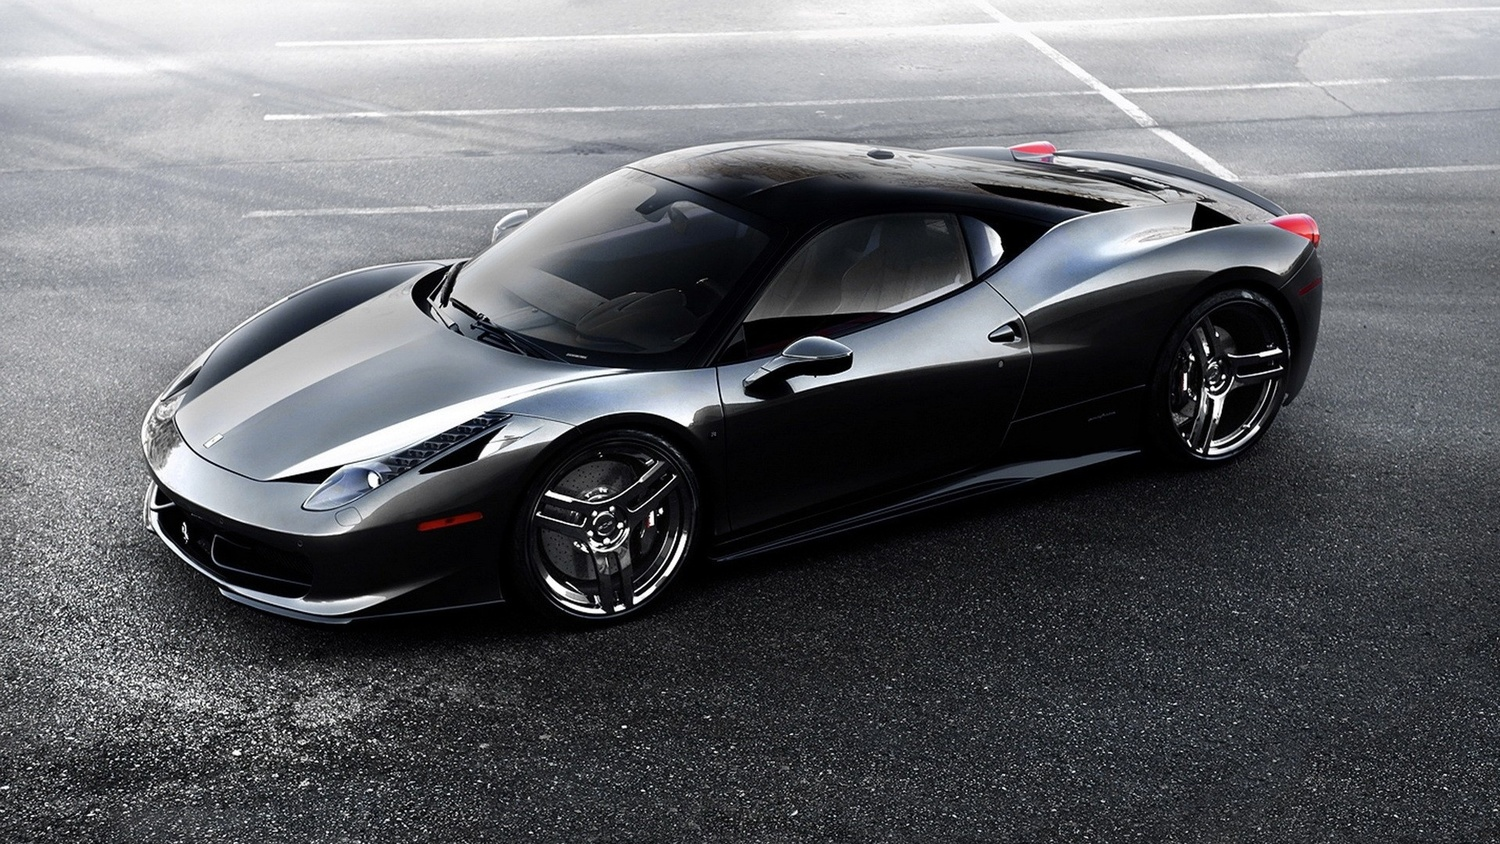 Related Images To Wallpaper Rent A Sports Car In Italy